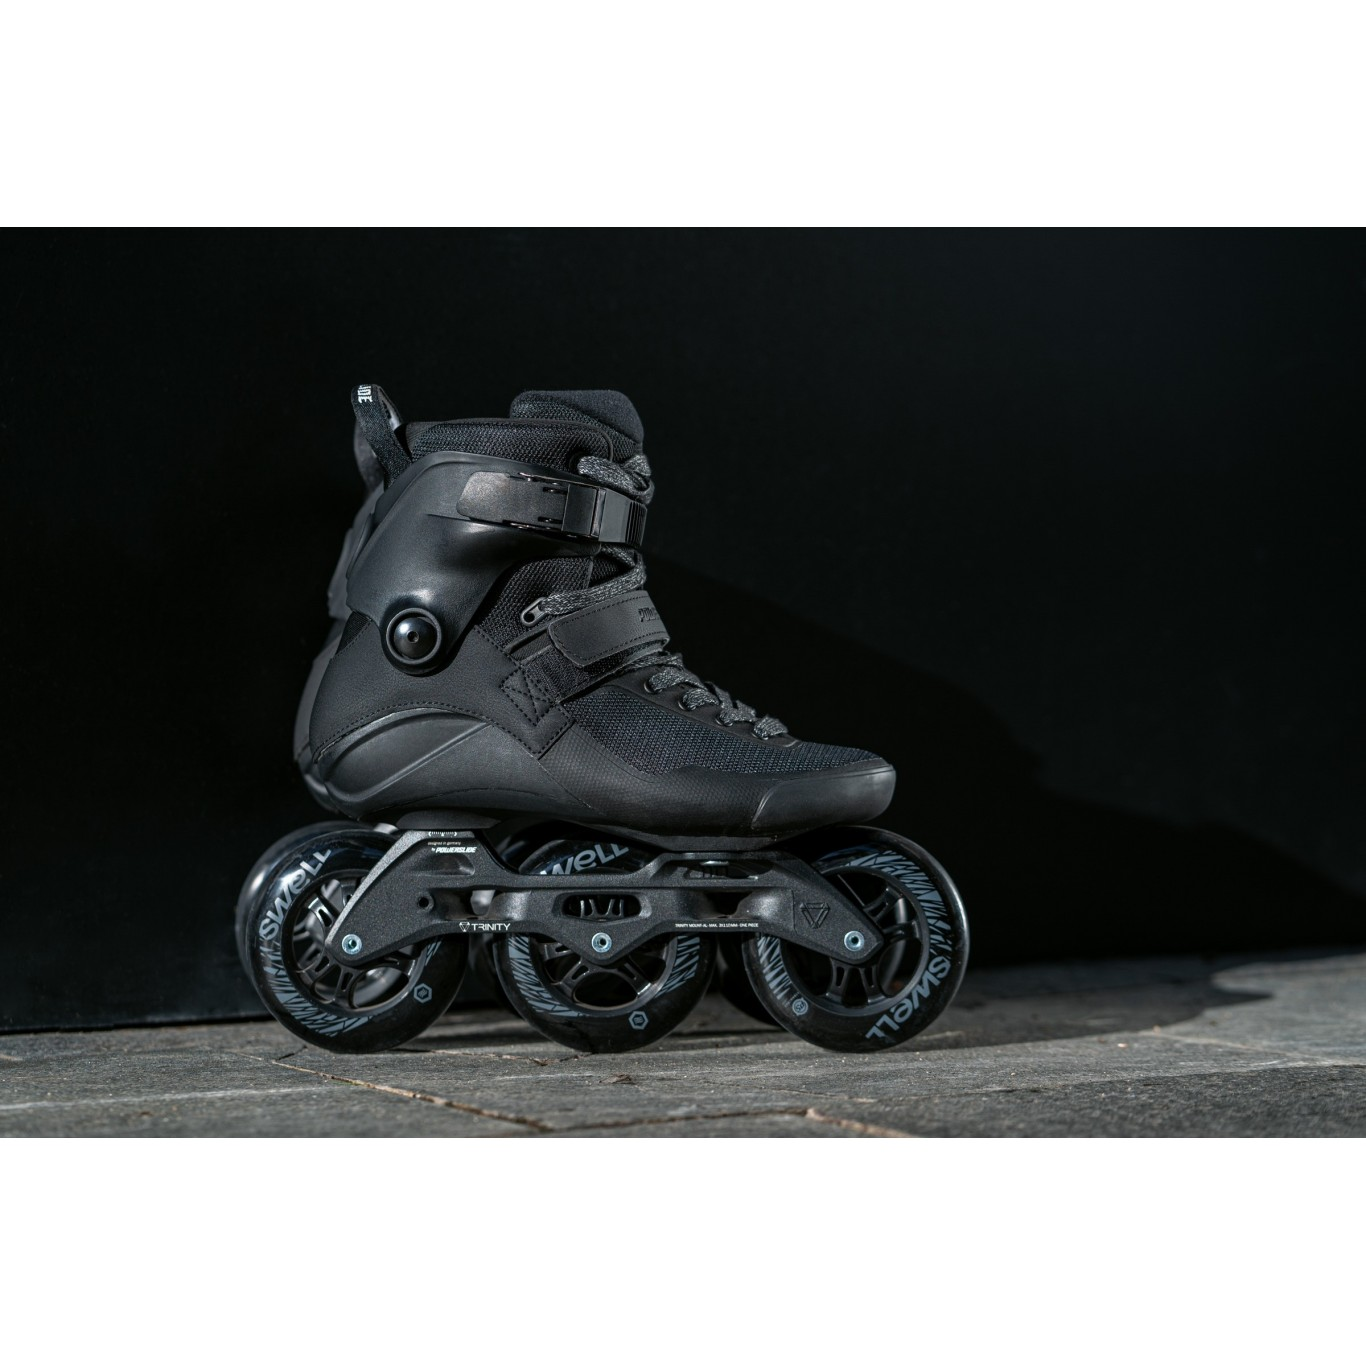 Patines Ajustables Cougar Flying Pig Azul en Combo